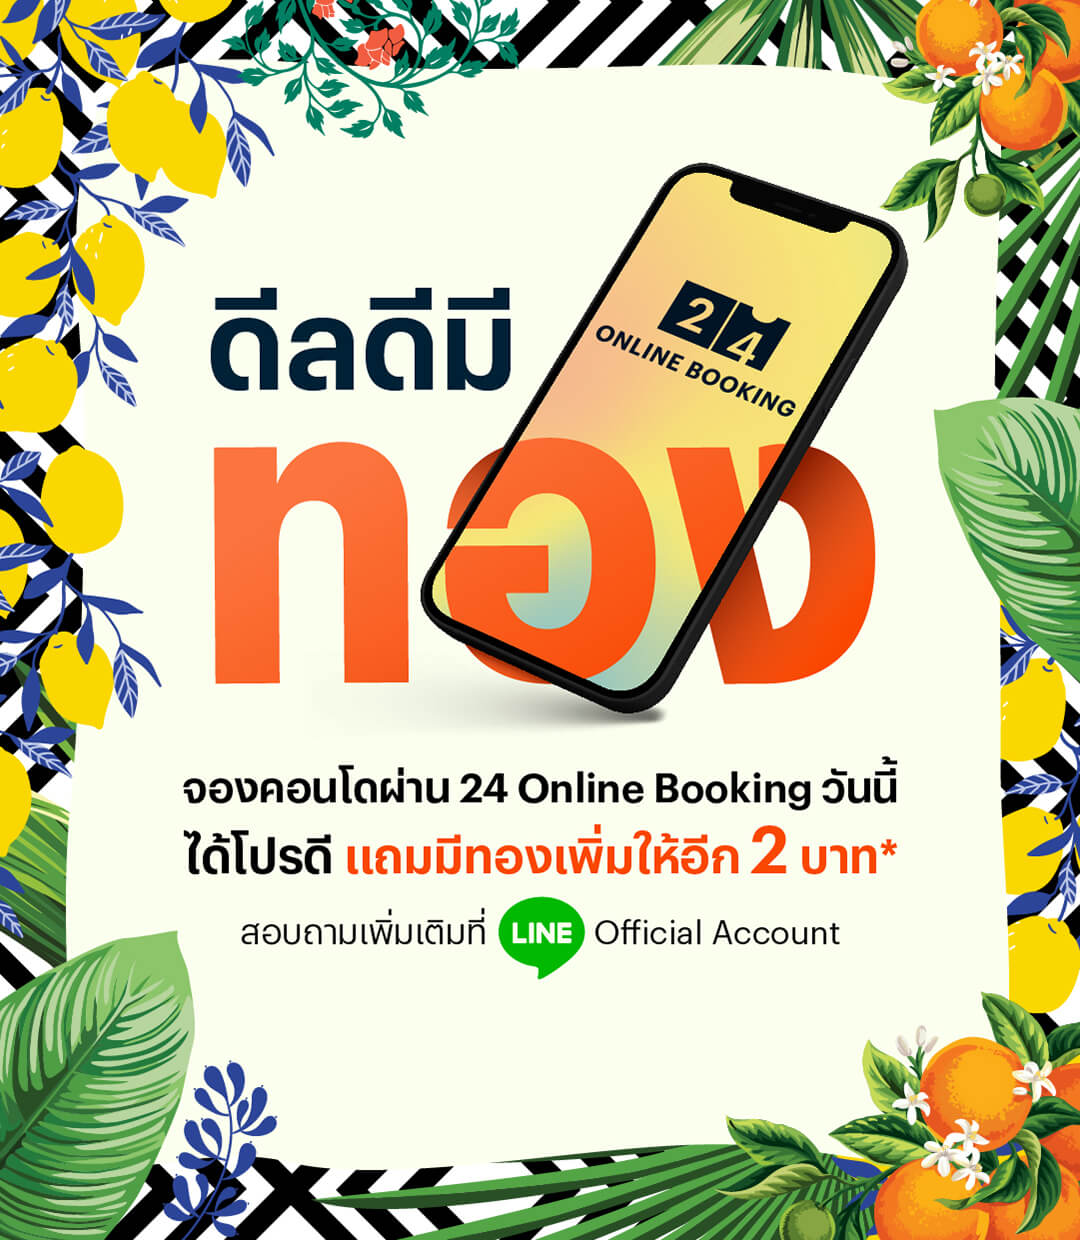 Online Booking 24 Gold